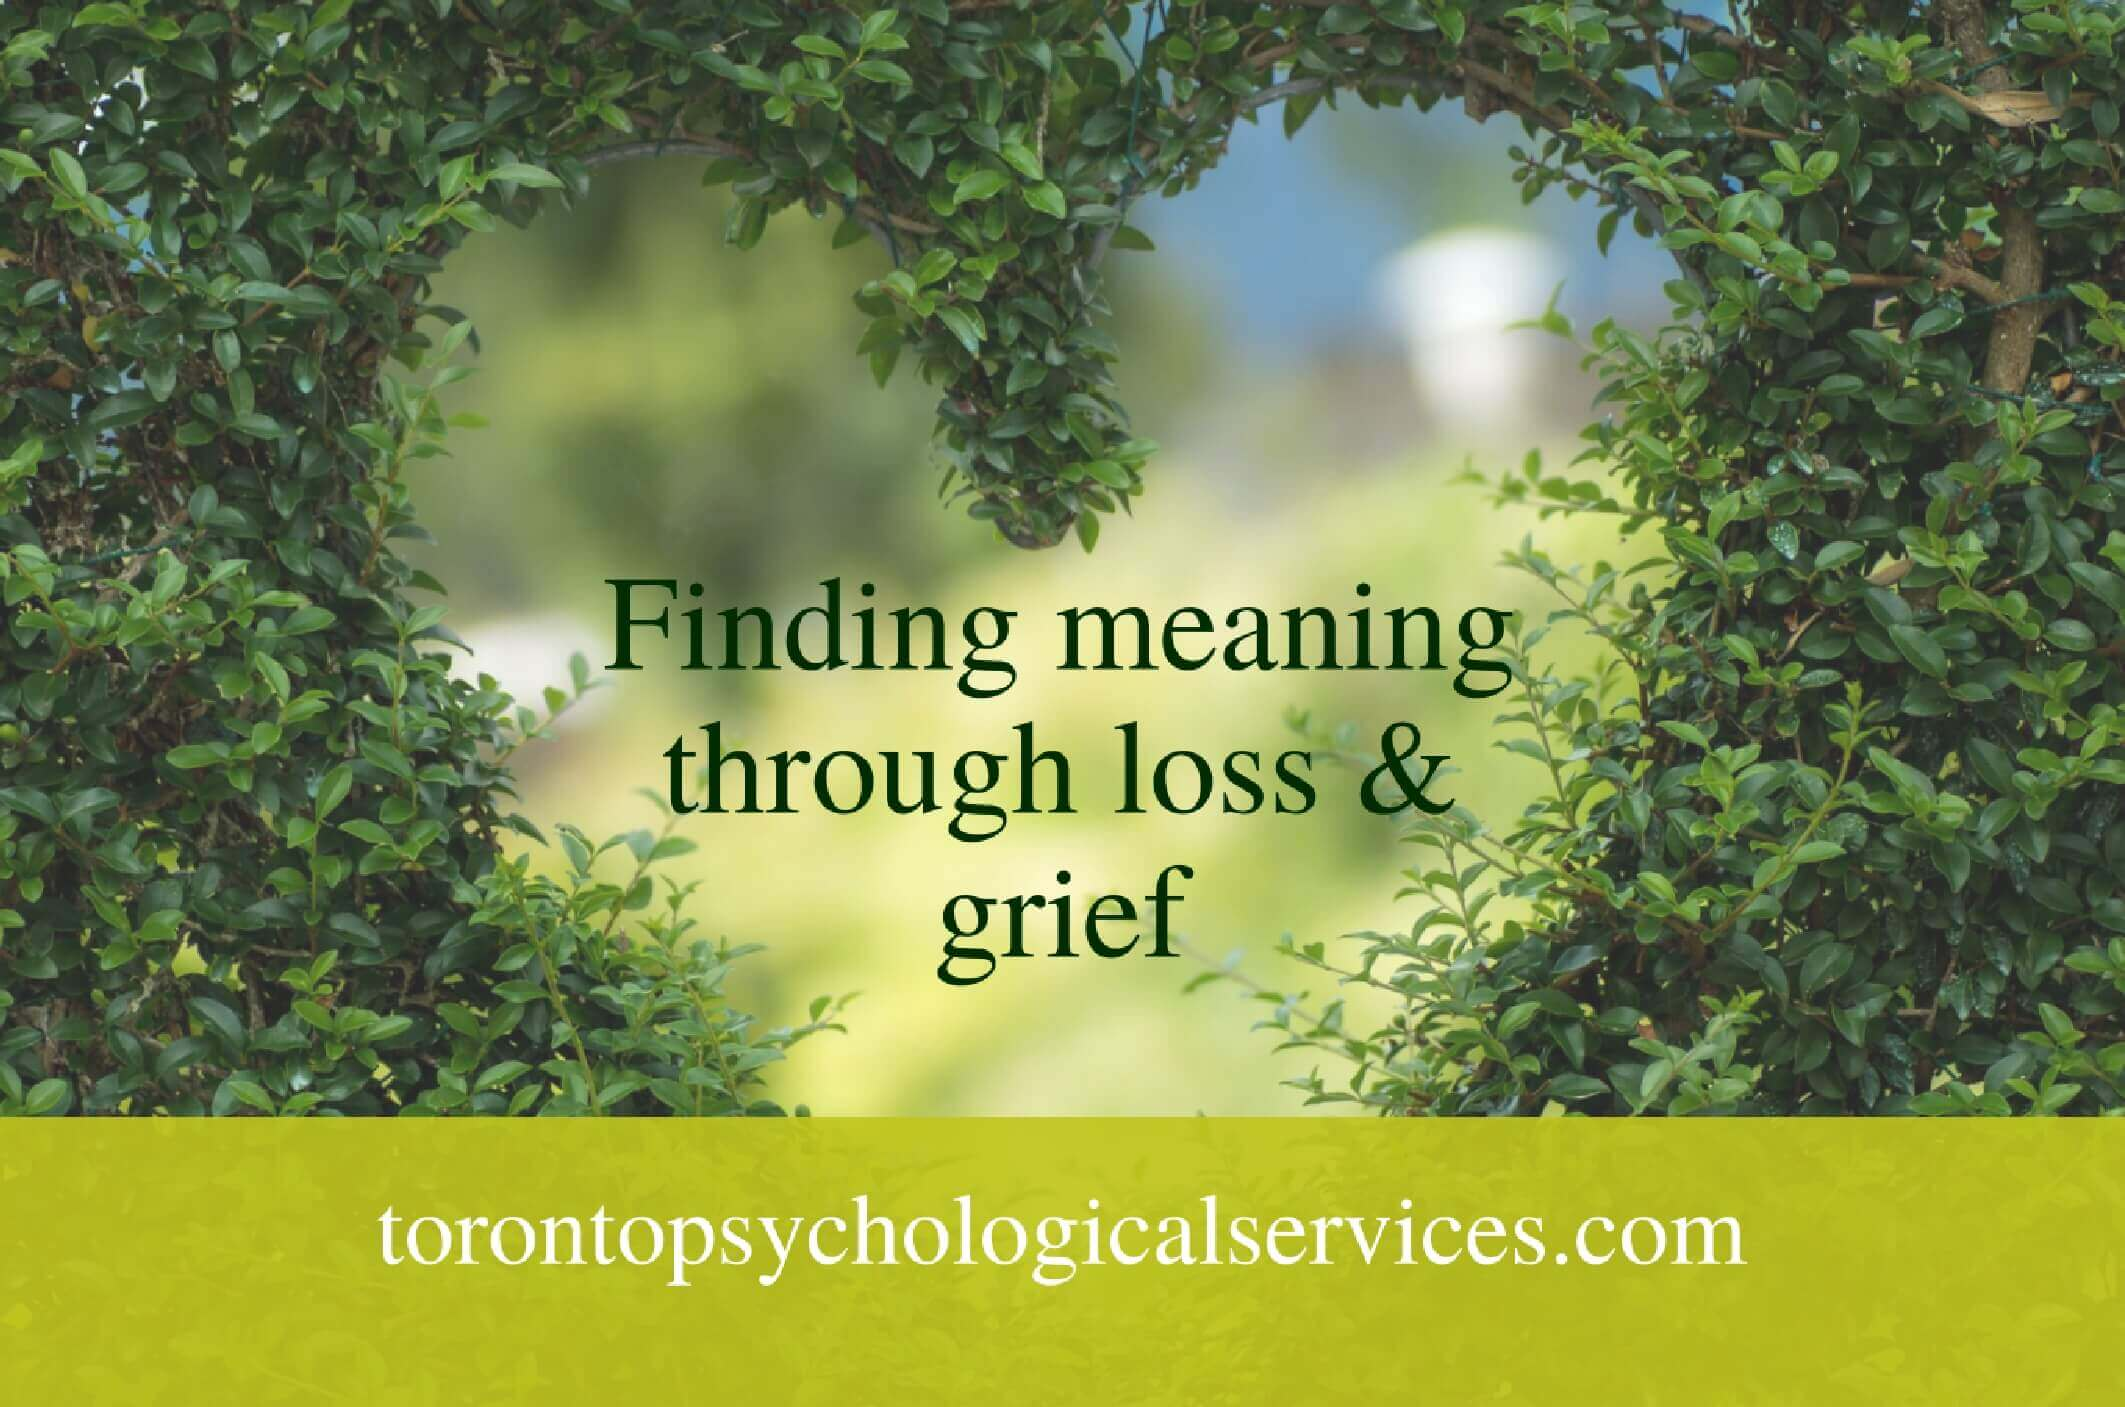 Finding meaning through loss & grief